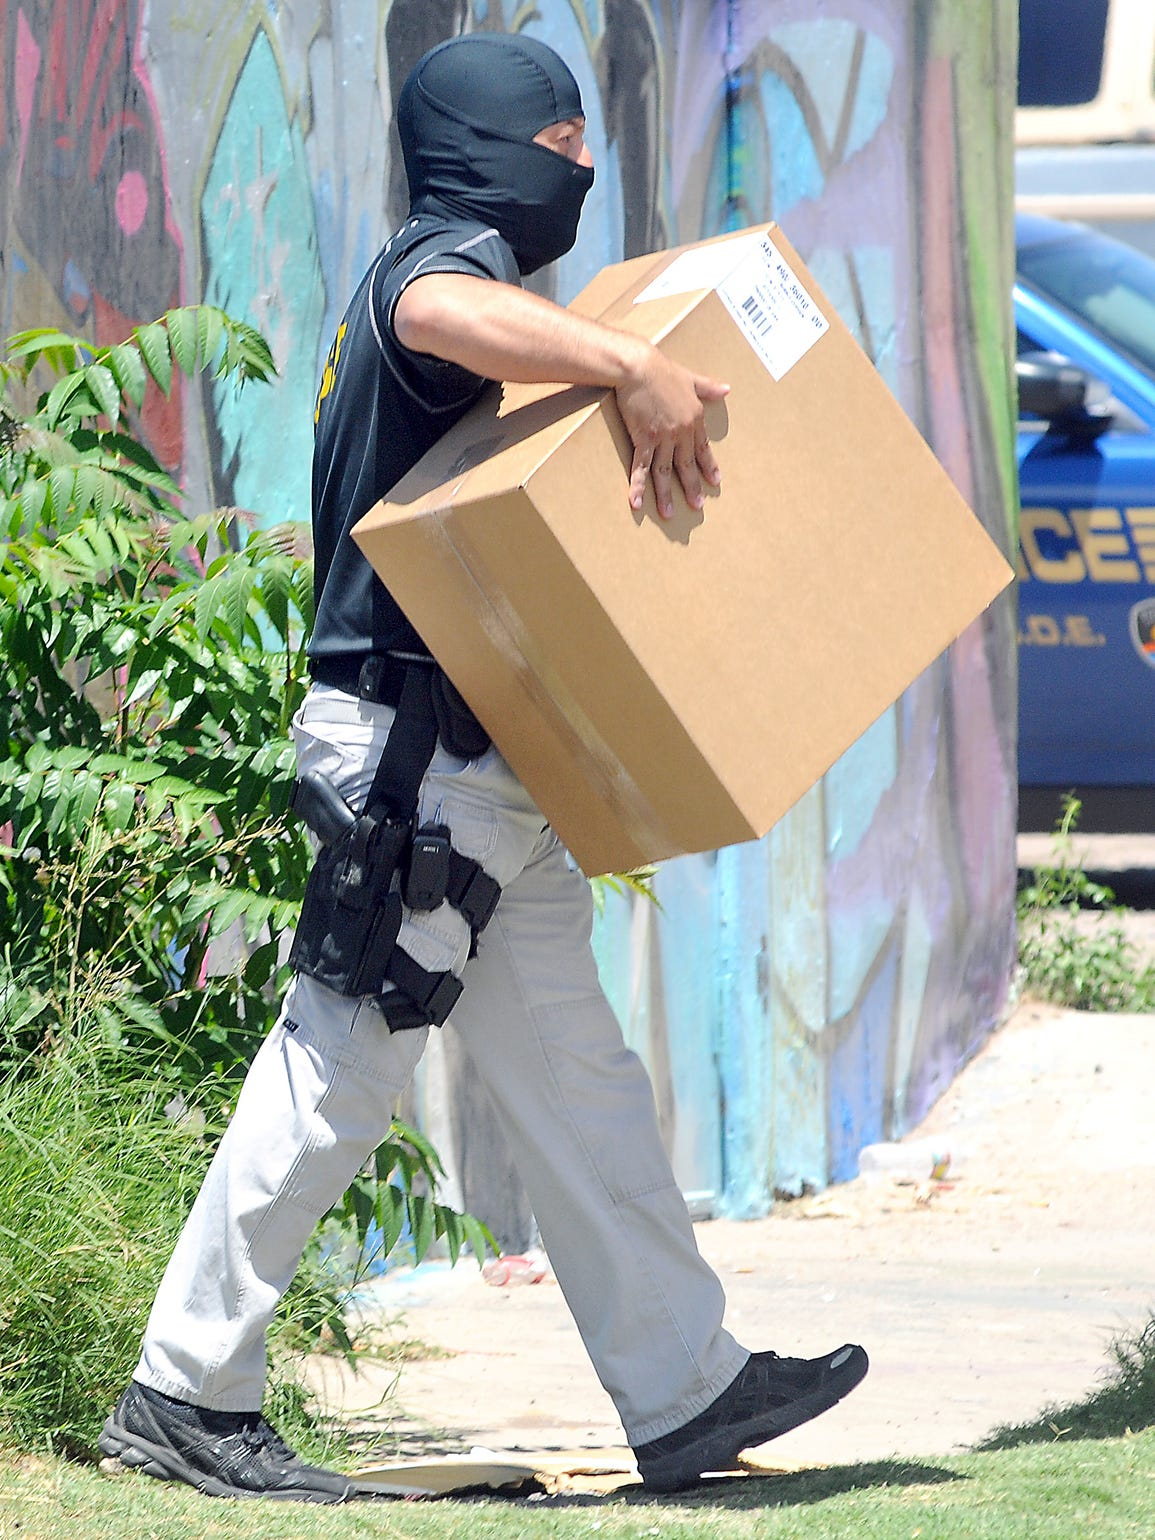 A masked DEA agent carries evidence out of Phat Glass,